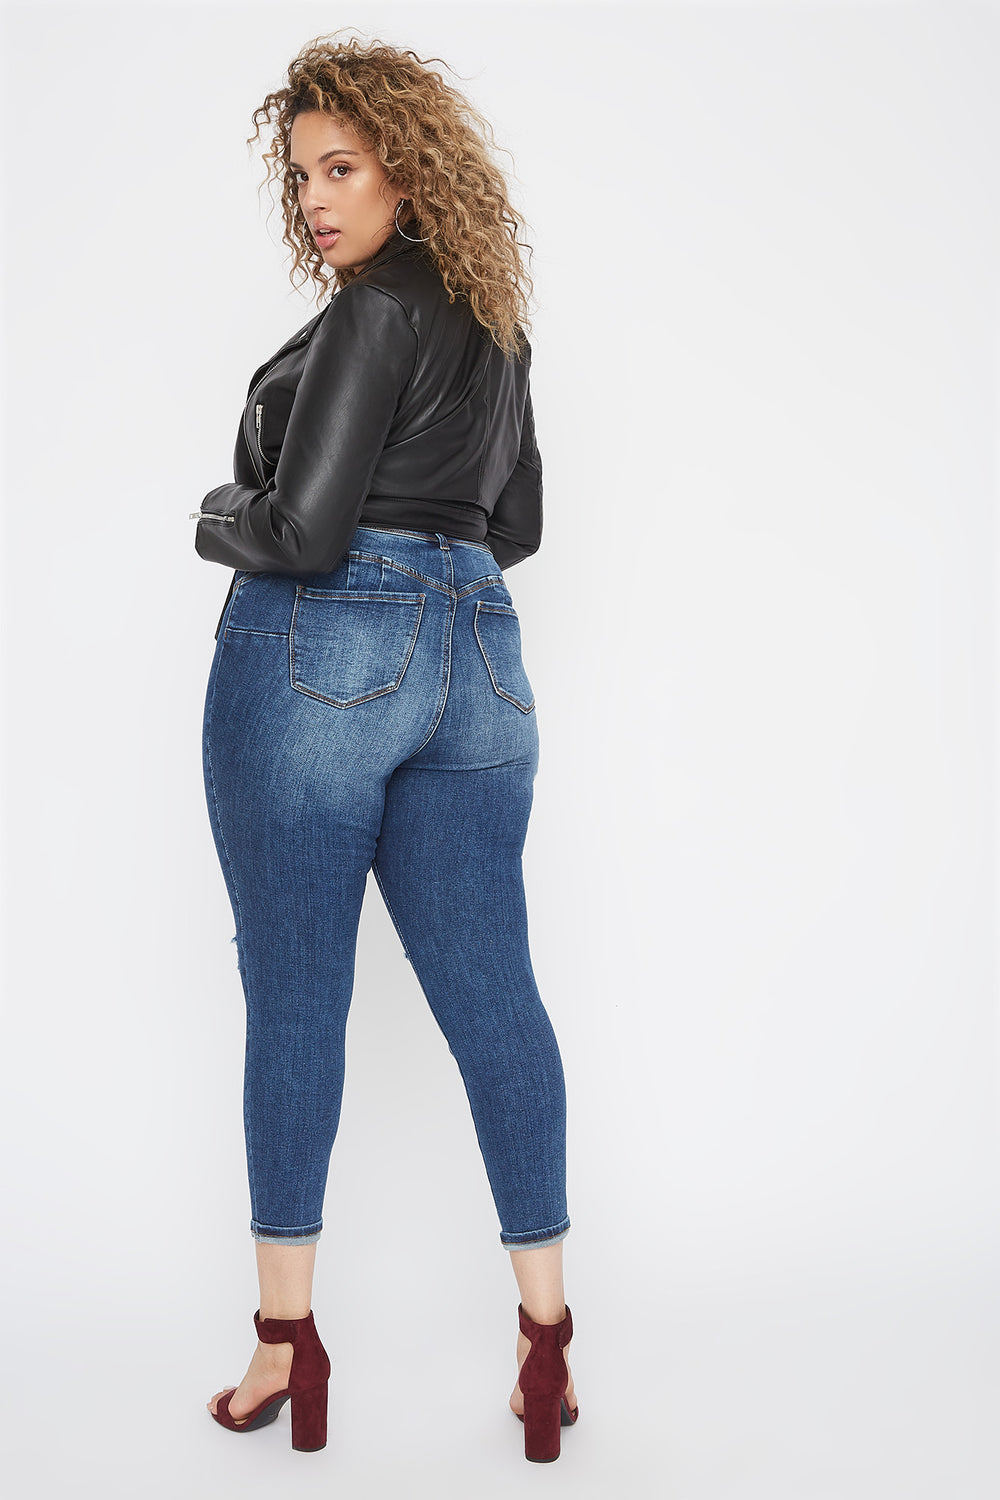 Plus Size Butt, I Love You High-Rise Push-Up Distressed Cuffed Skinny Jean Navy Blue